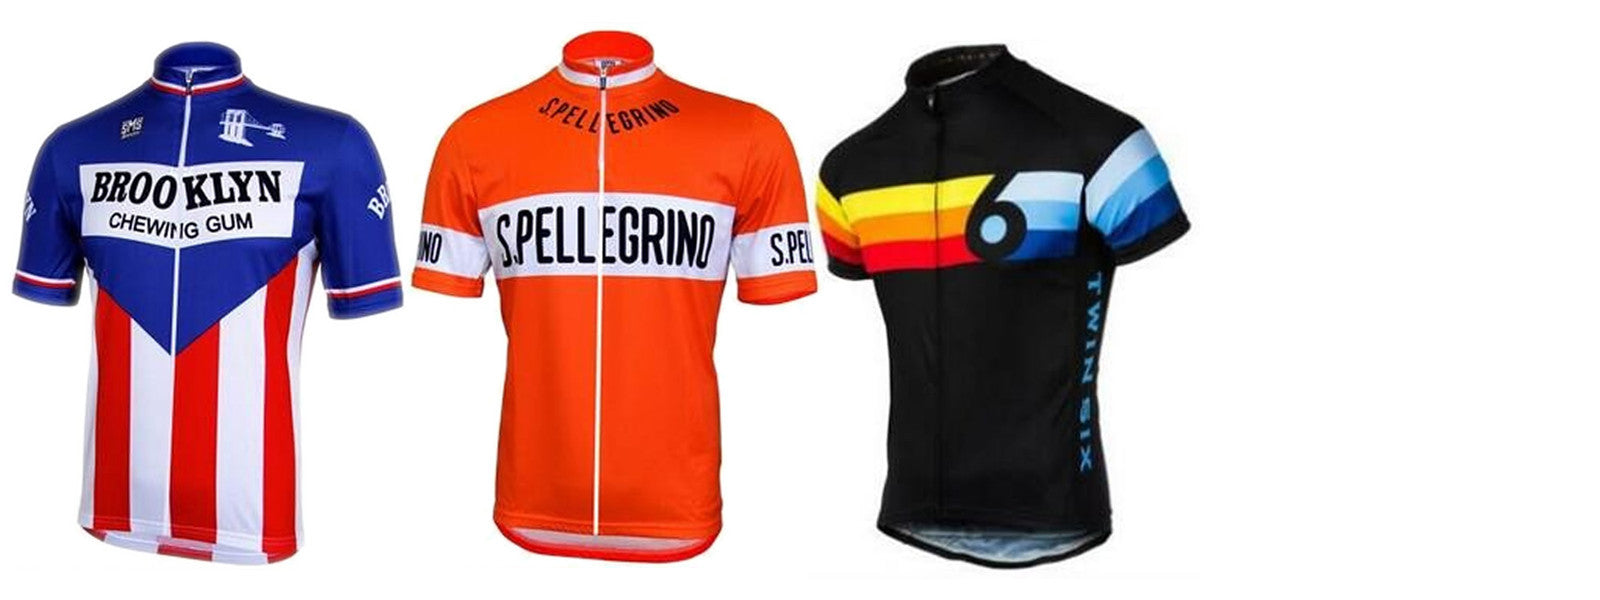 The best selling cycling jerseys